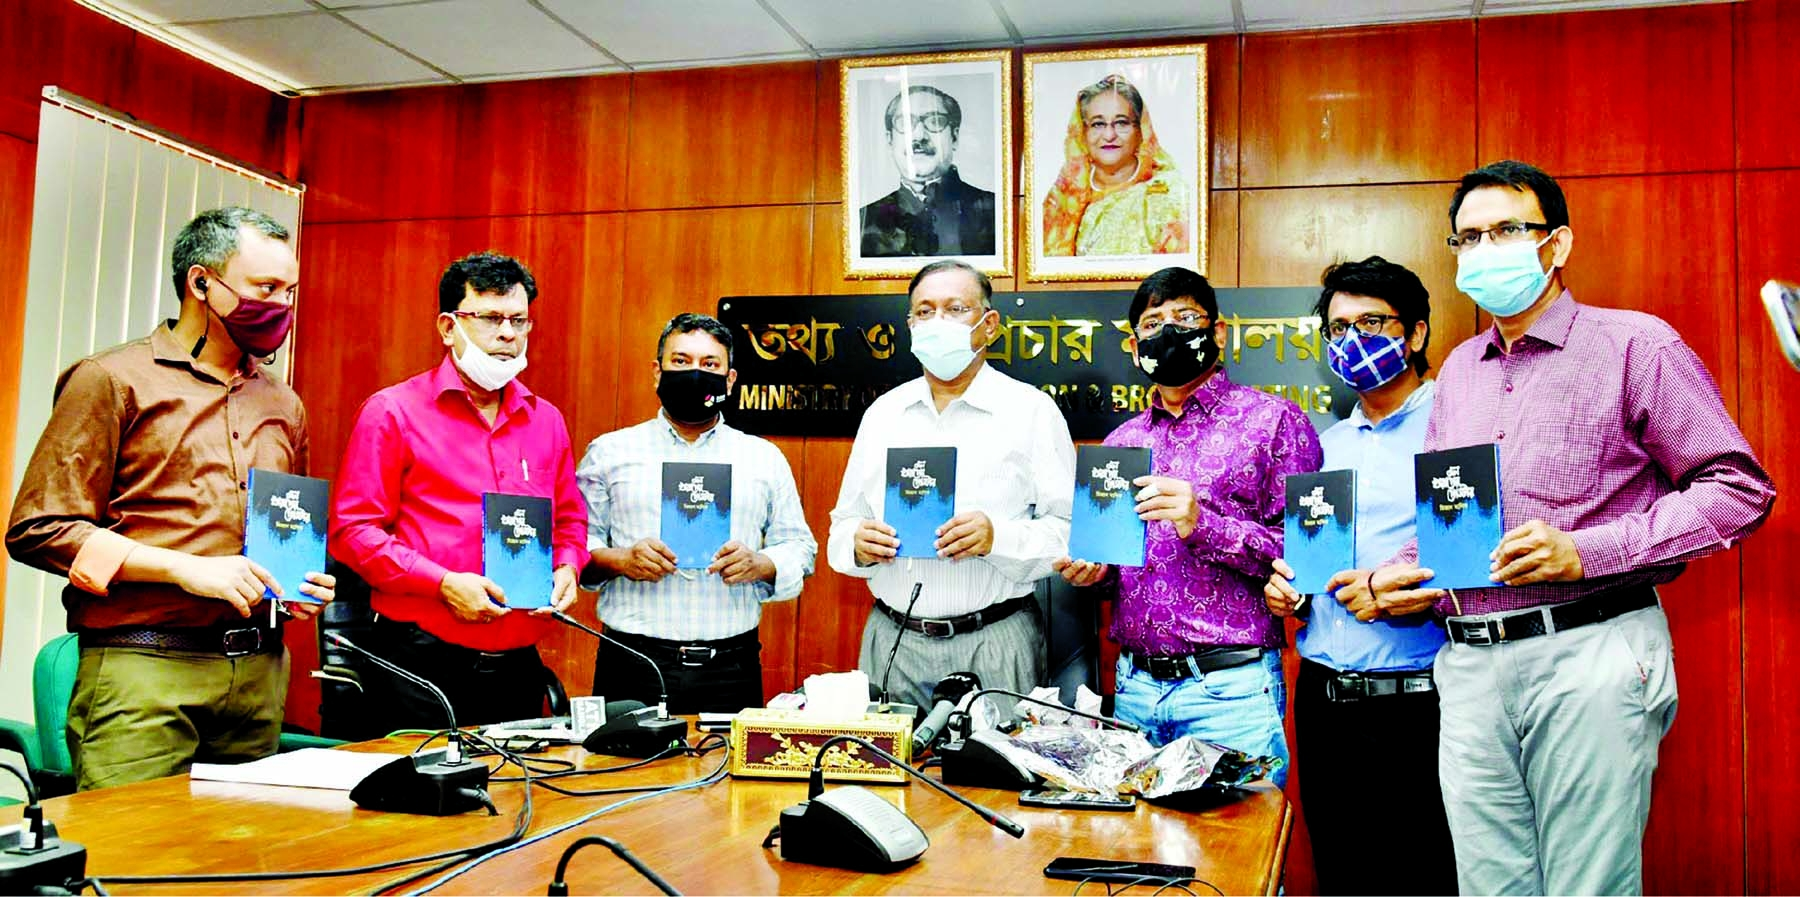 Information and Broadcasting Minister Dr. Hasan Mahmud, among others, holds the copies of a book titled 'Mon Kharaper Poster' at its cover unwrapping ceremony in the seminar room of the ministry on Monday.